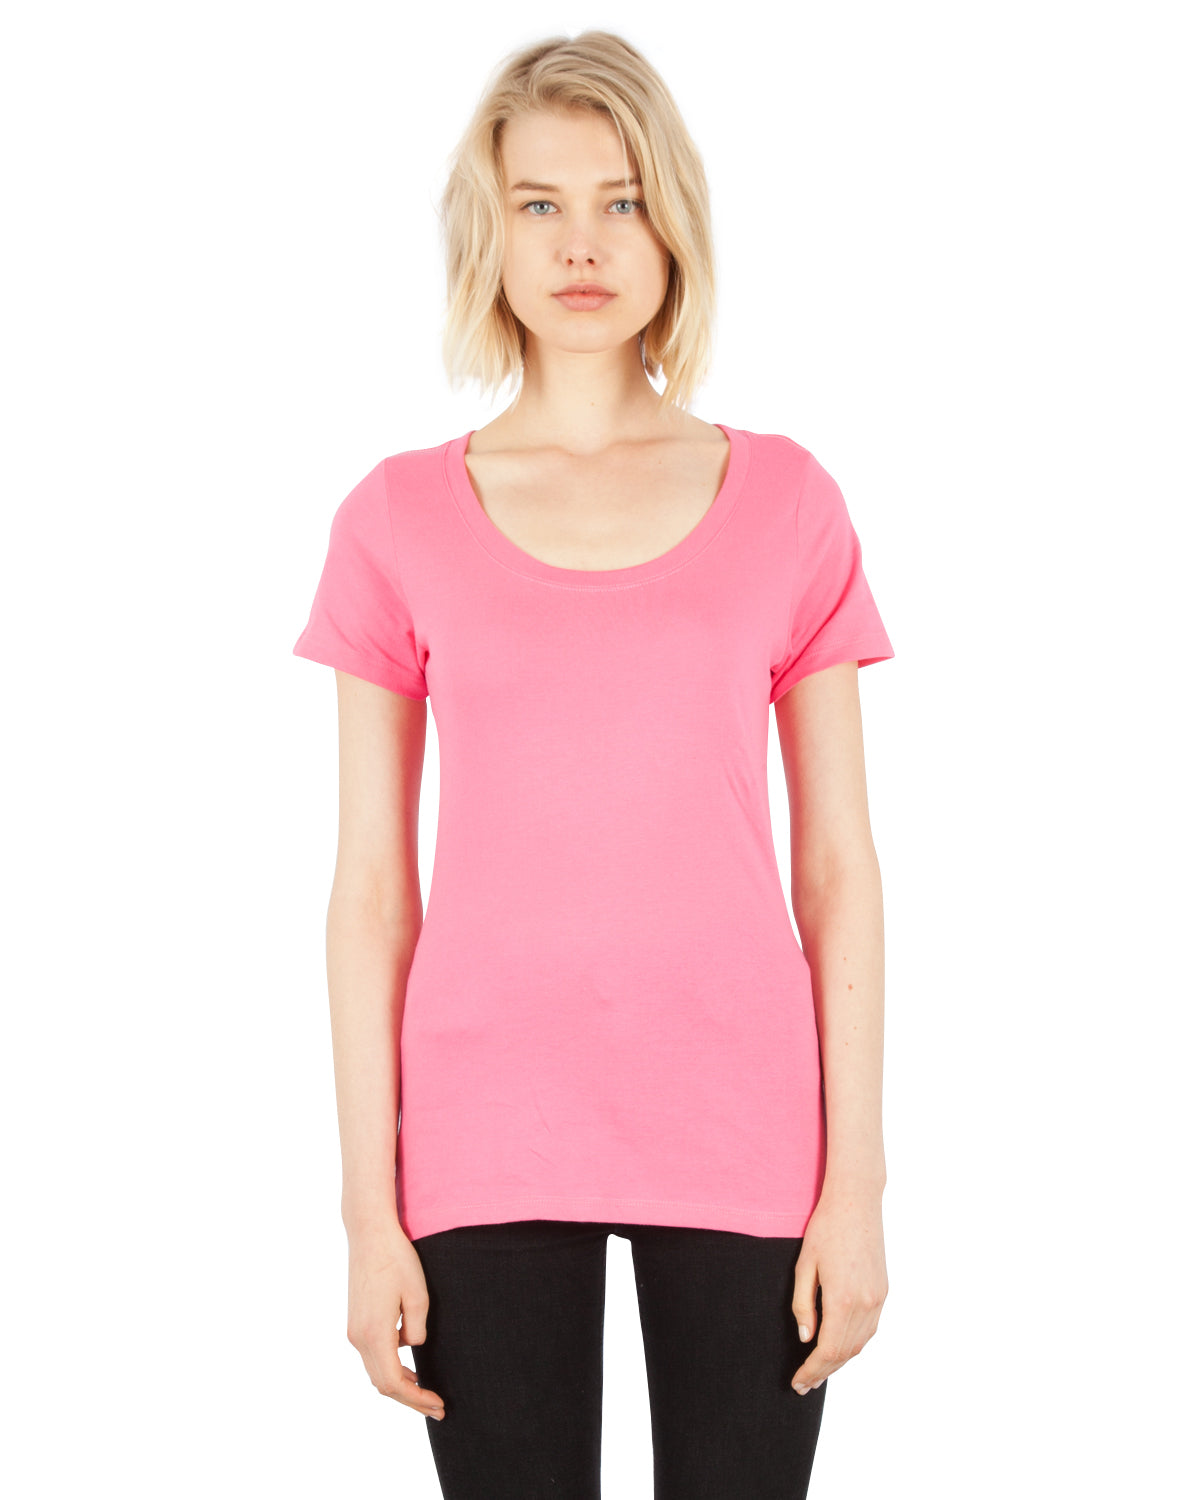 1030 Combed Cotton Scoop Neck